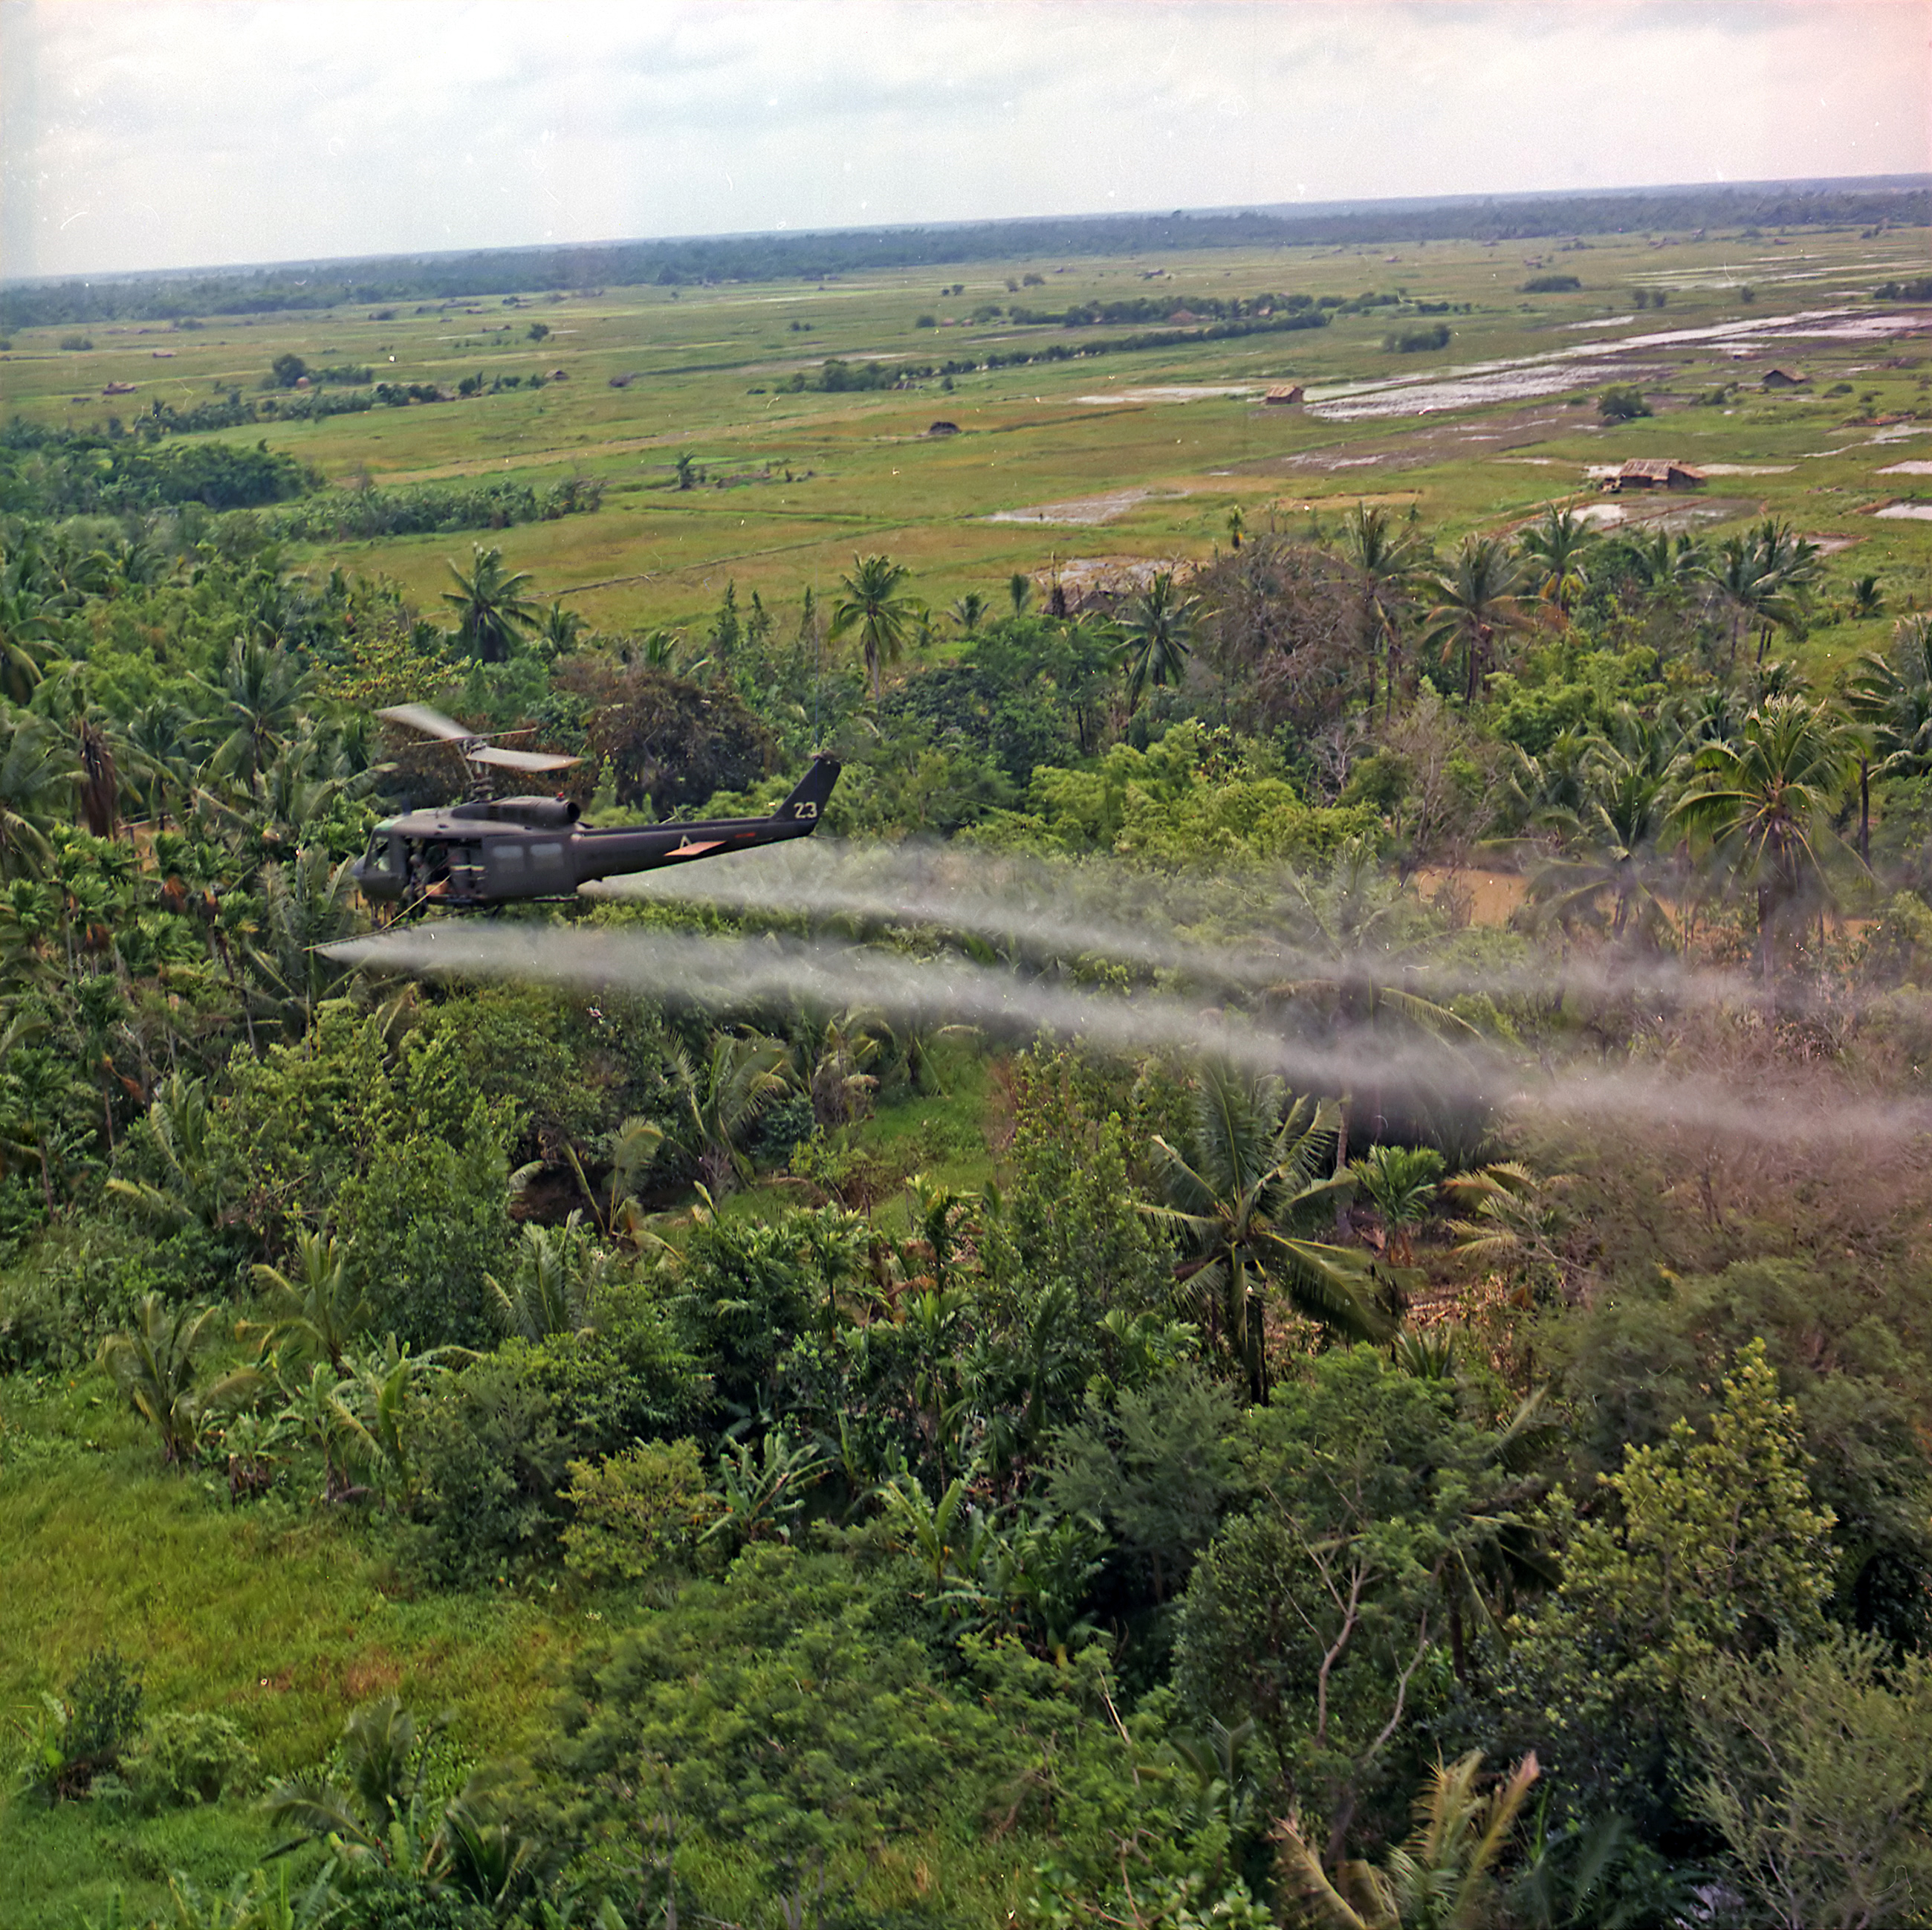 http://upload.wikimedia.org/wikipedia/commons/8/82/Defoliation_agent_spraying.jpg